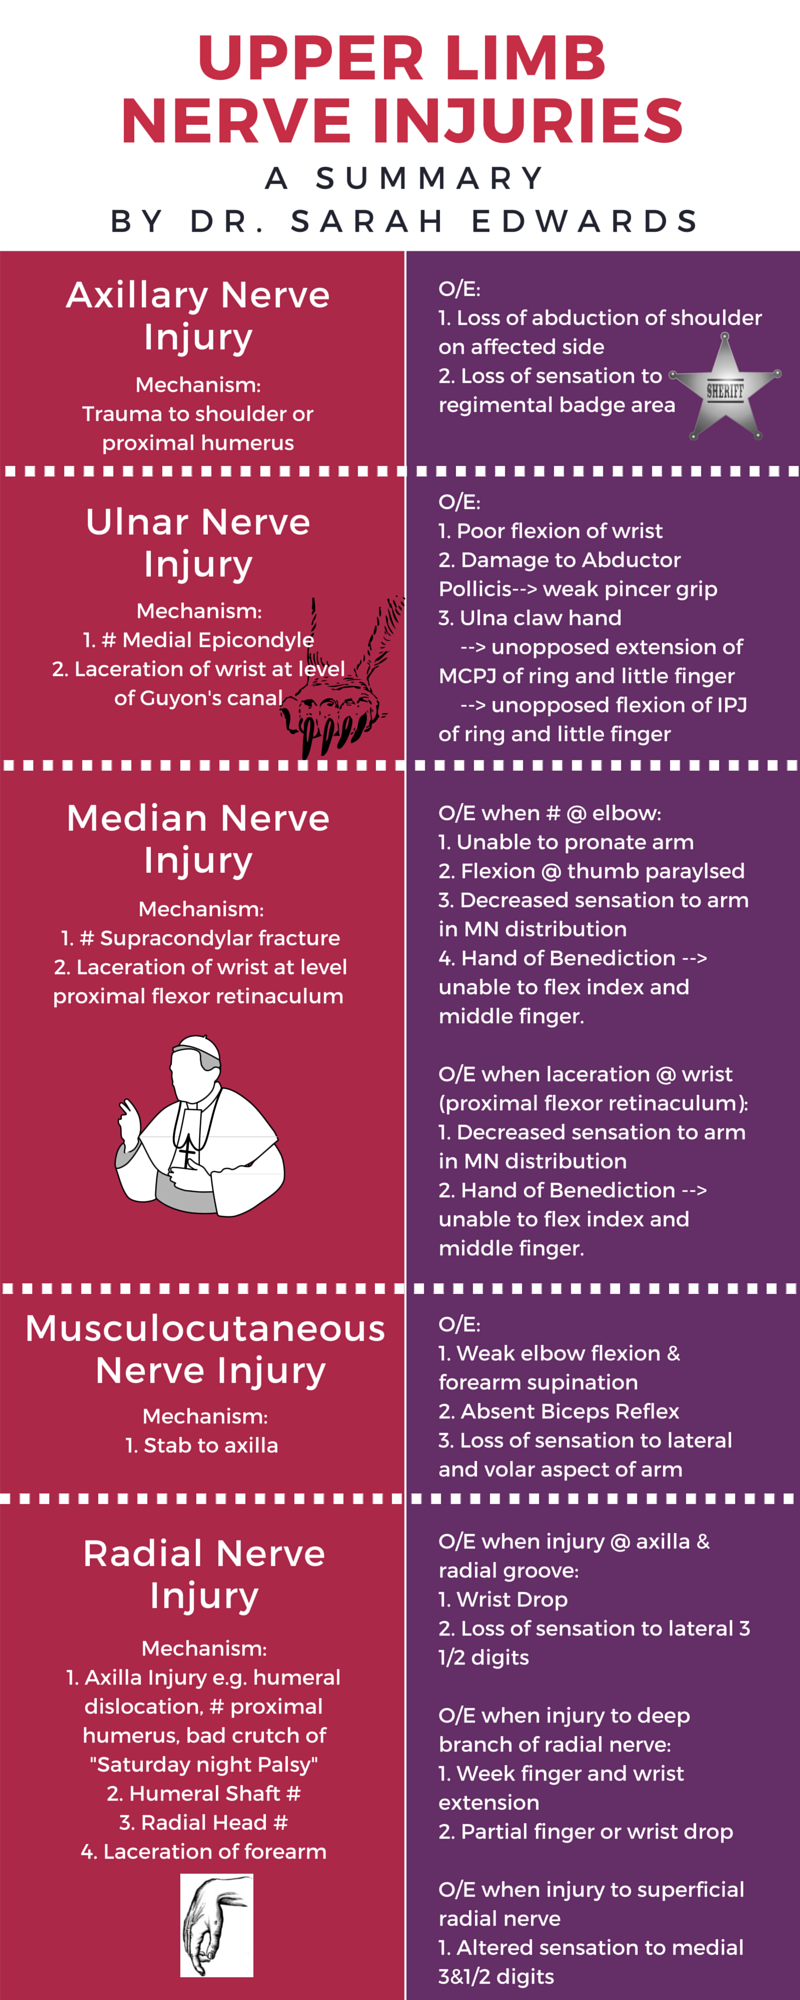 Summary of Upper Limb Nerve Injuries and their Clinical Presentation